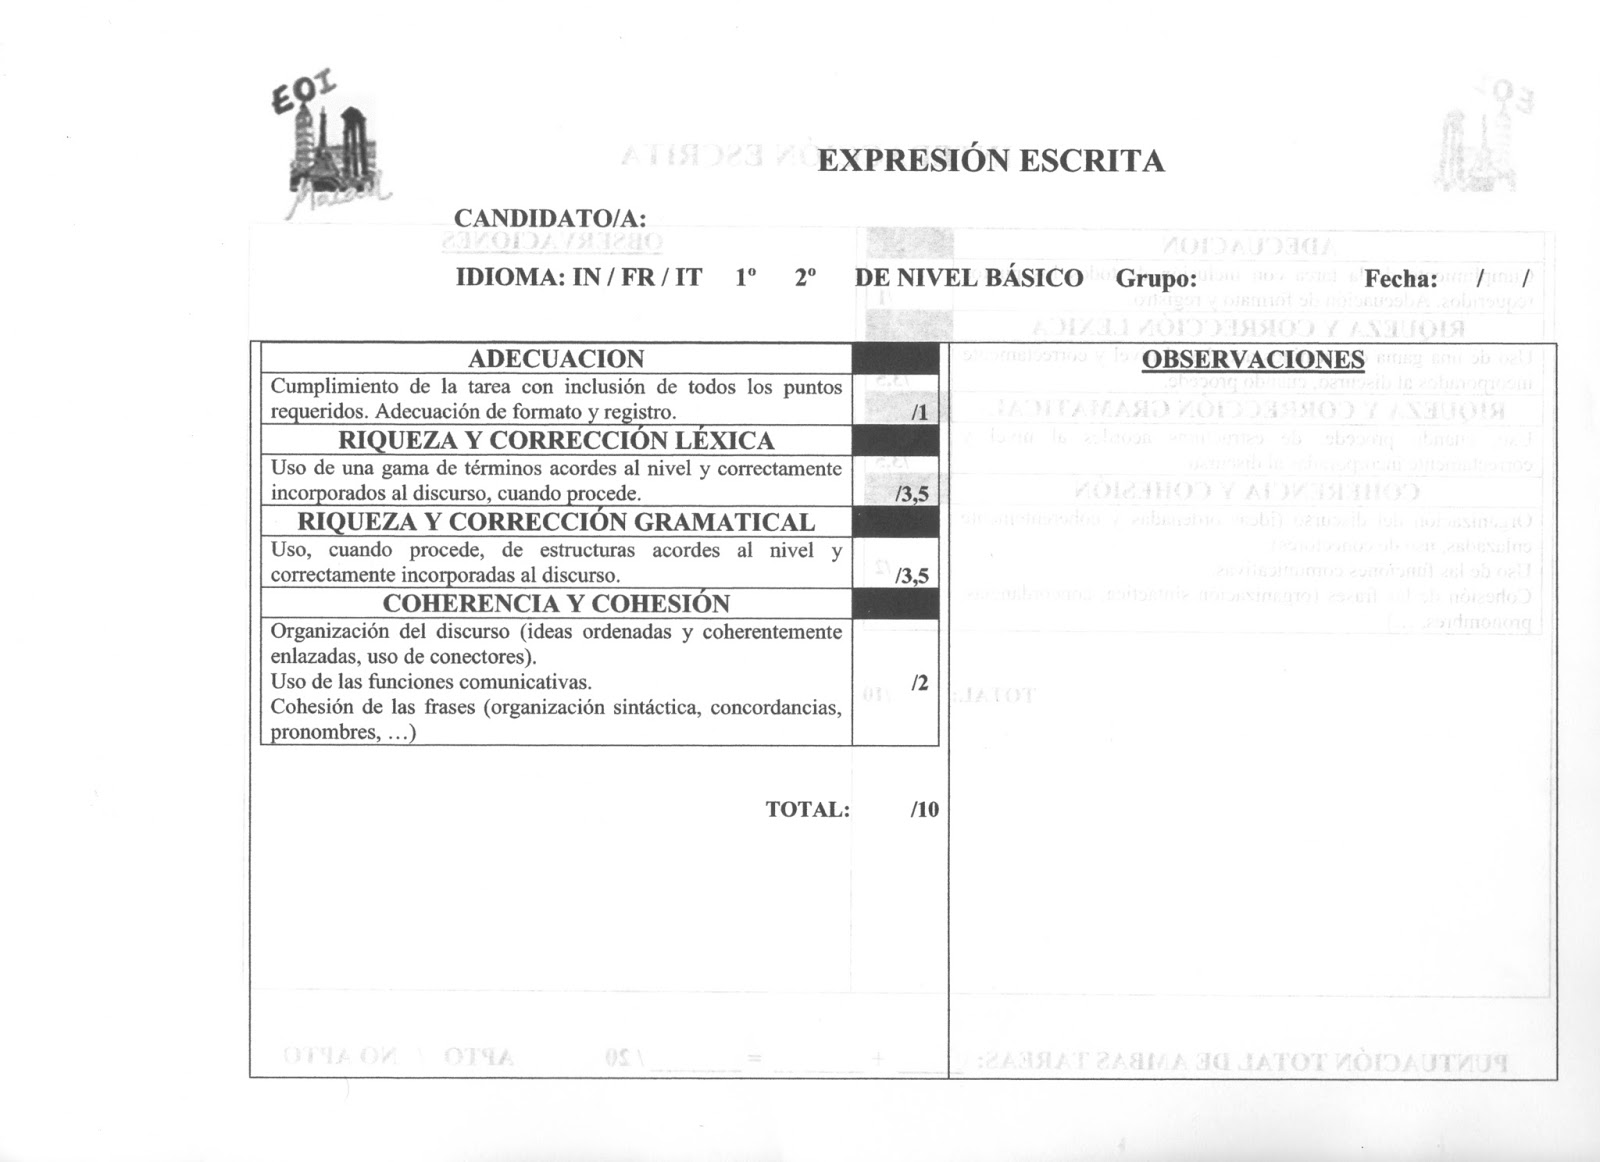 Food for thought: 1ºNB PLANTILLA DE CORRECCIÓN DE EXPRESIÓN ESCRITA